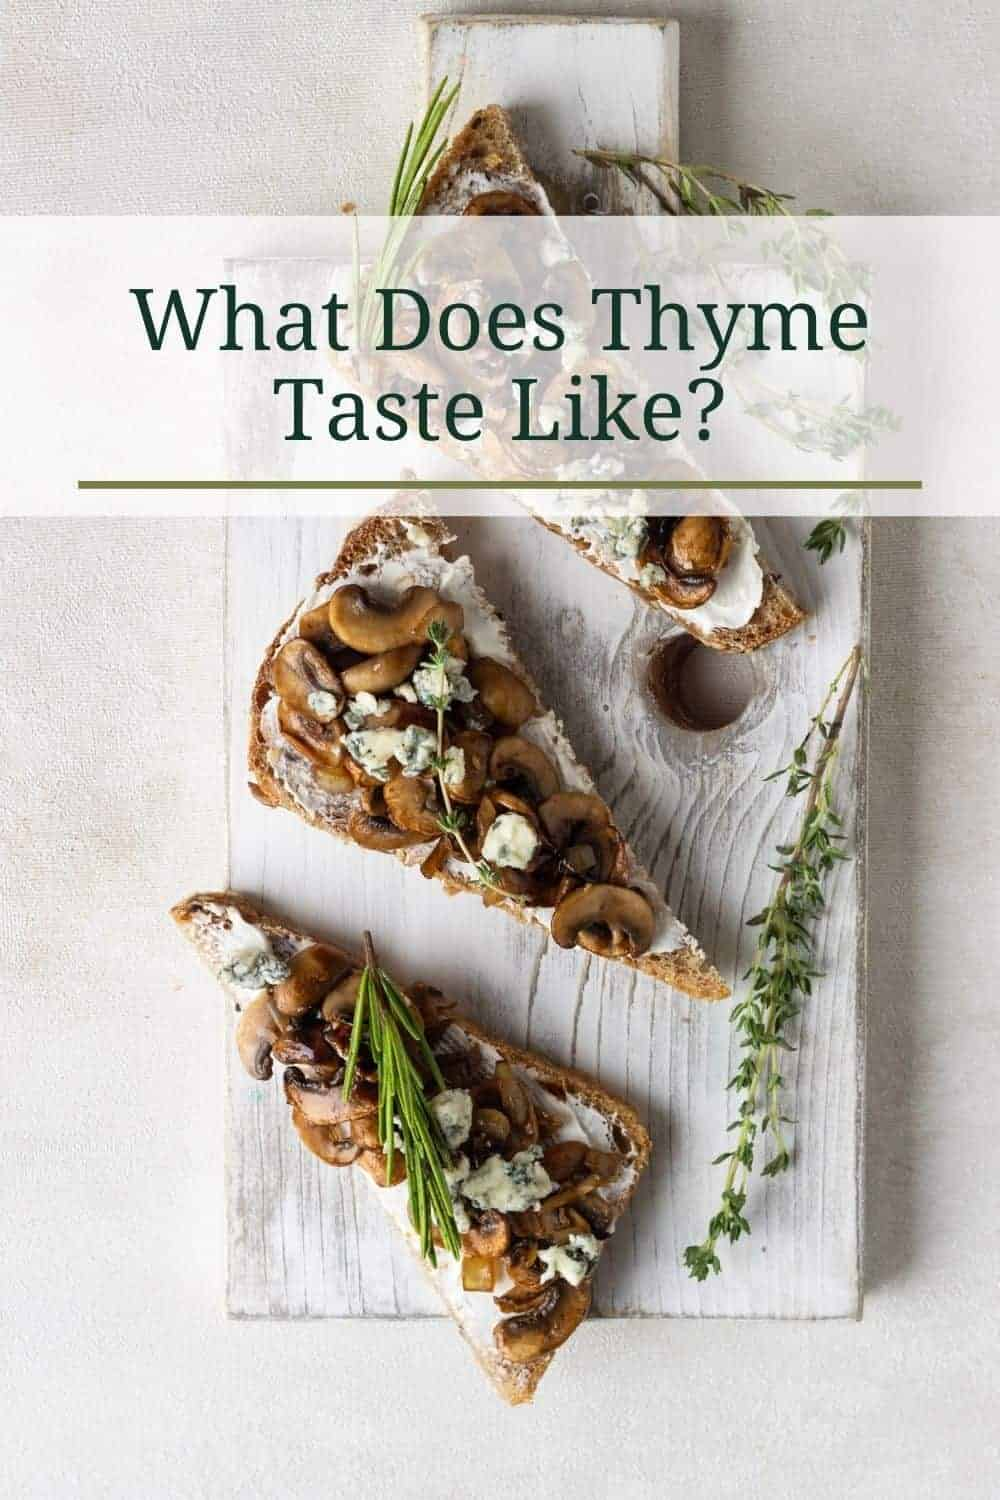 What does thyme style like? All the things it's good to learn about thyme